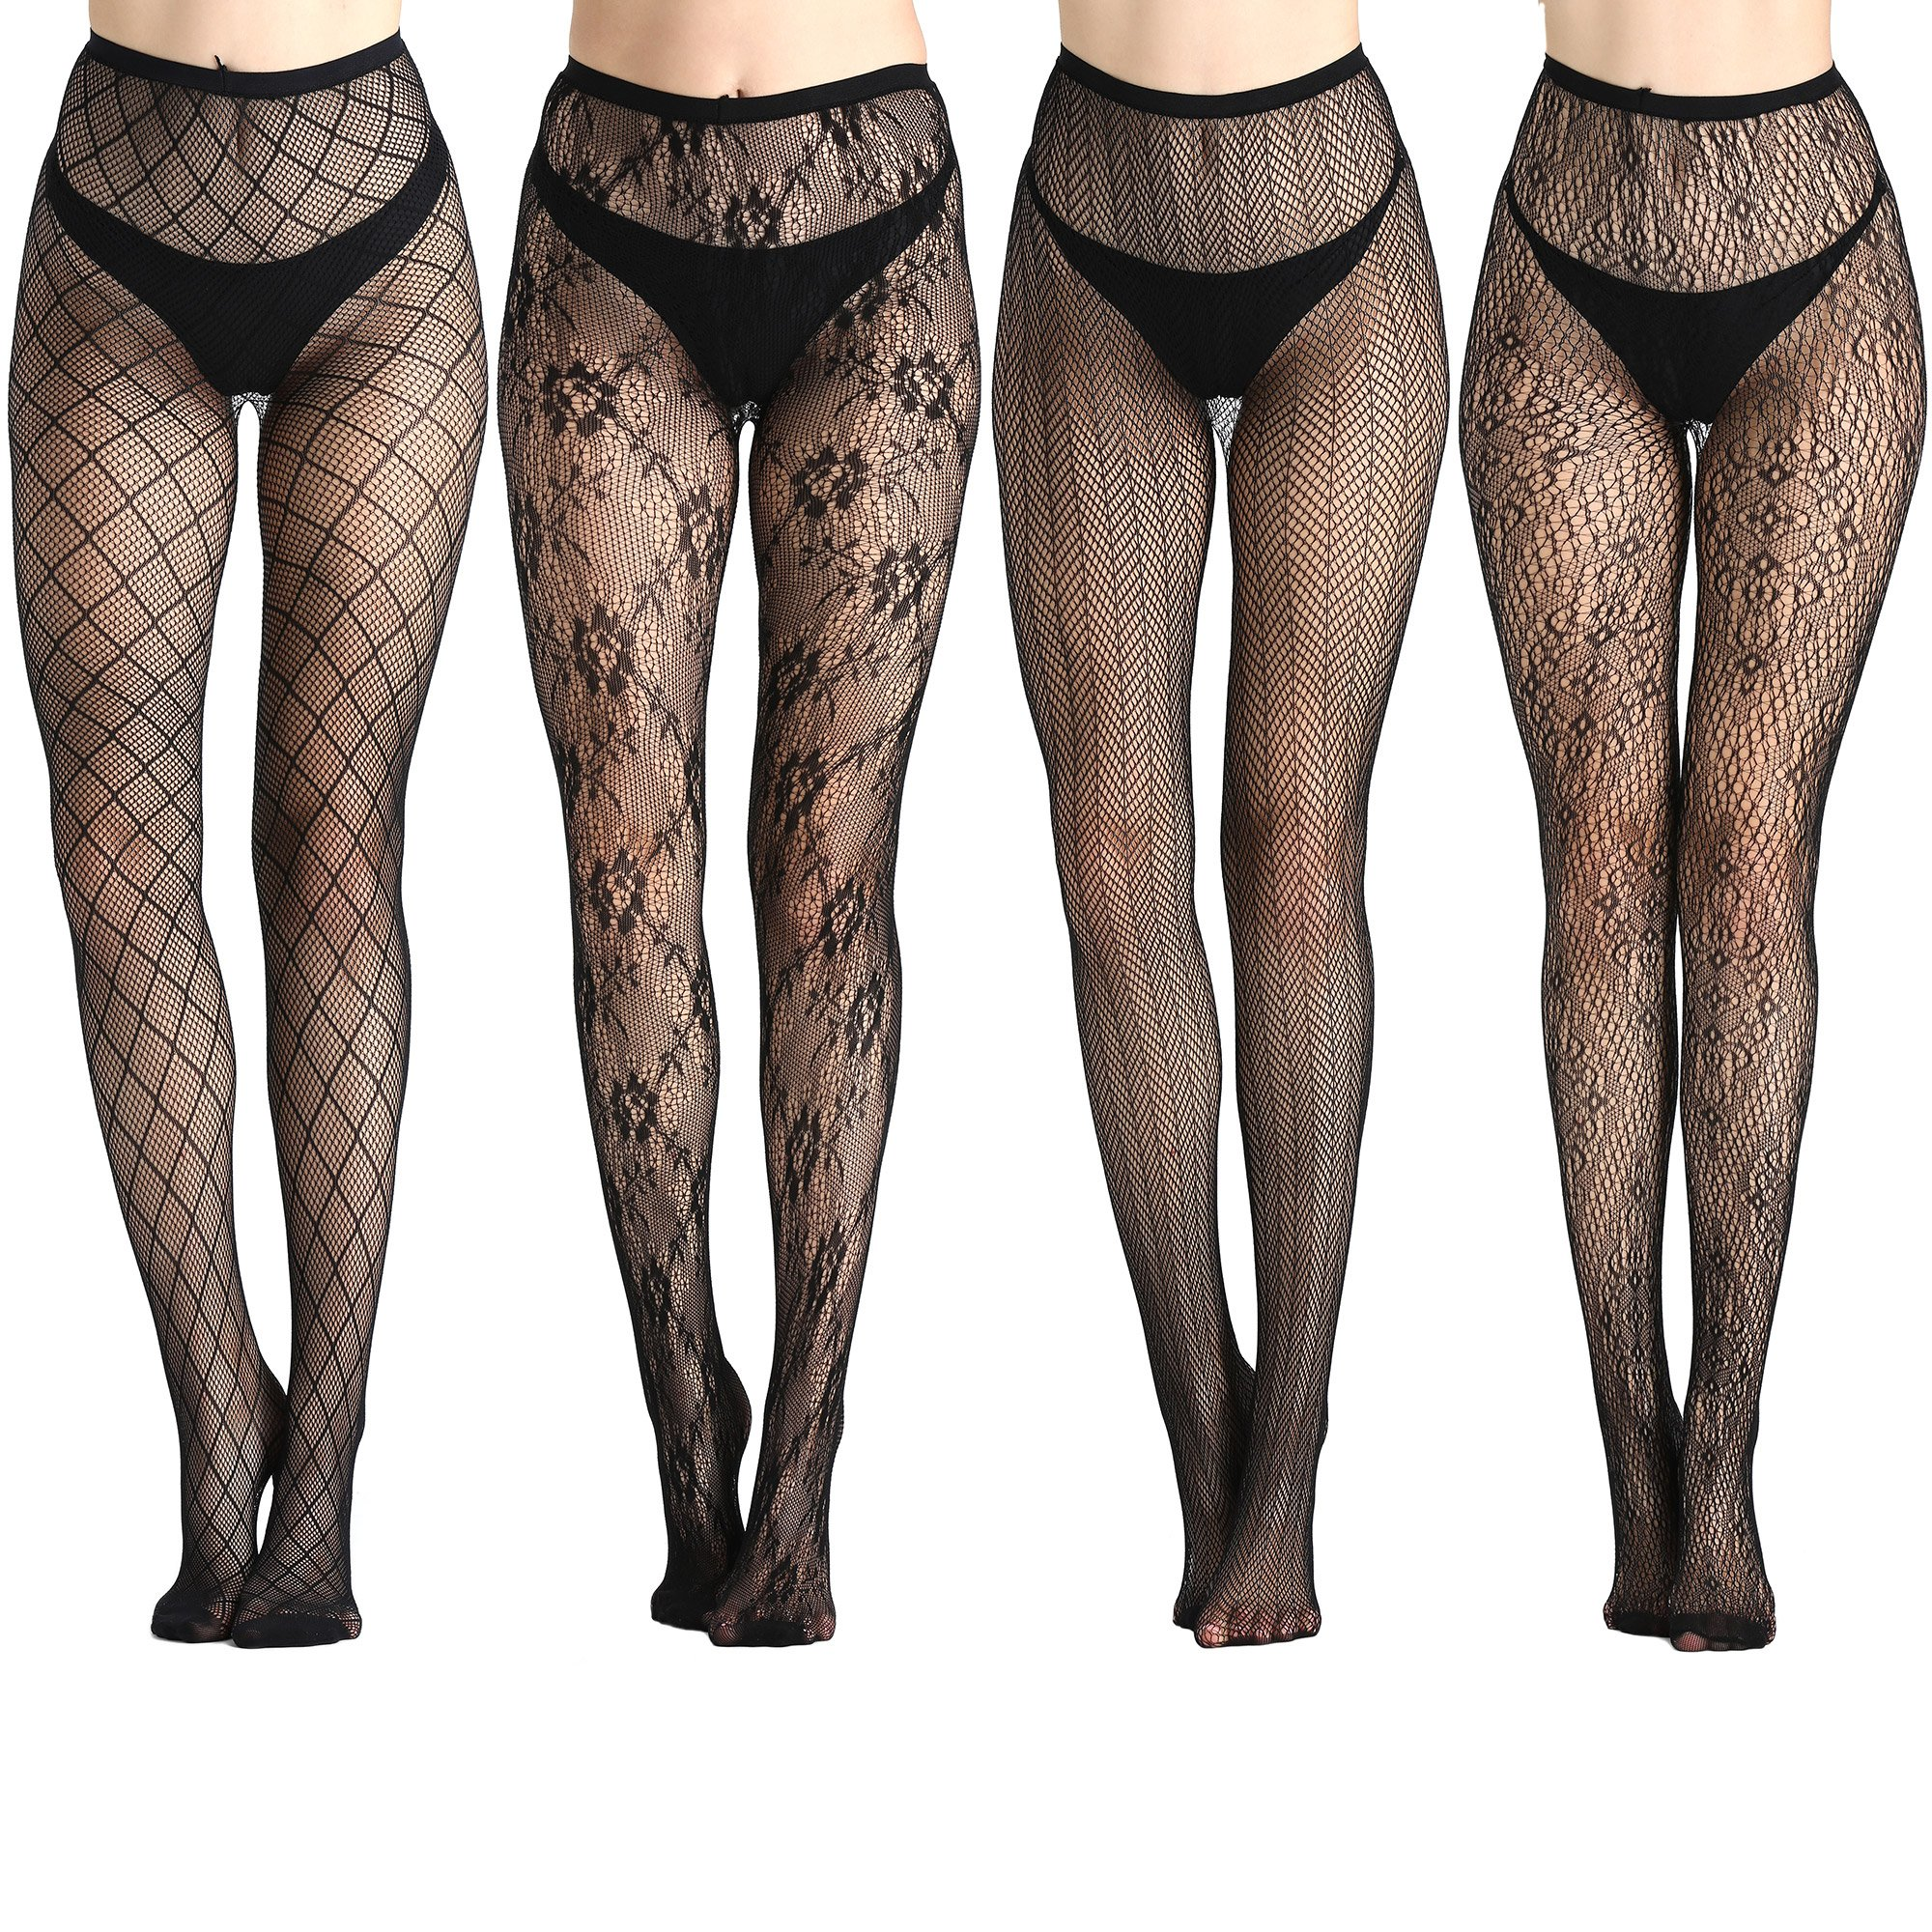 Joyaria Womens Sexy Tights Fishnet Stockings Lace Pantyhose Black 4 pack, Black 2